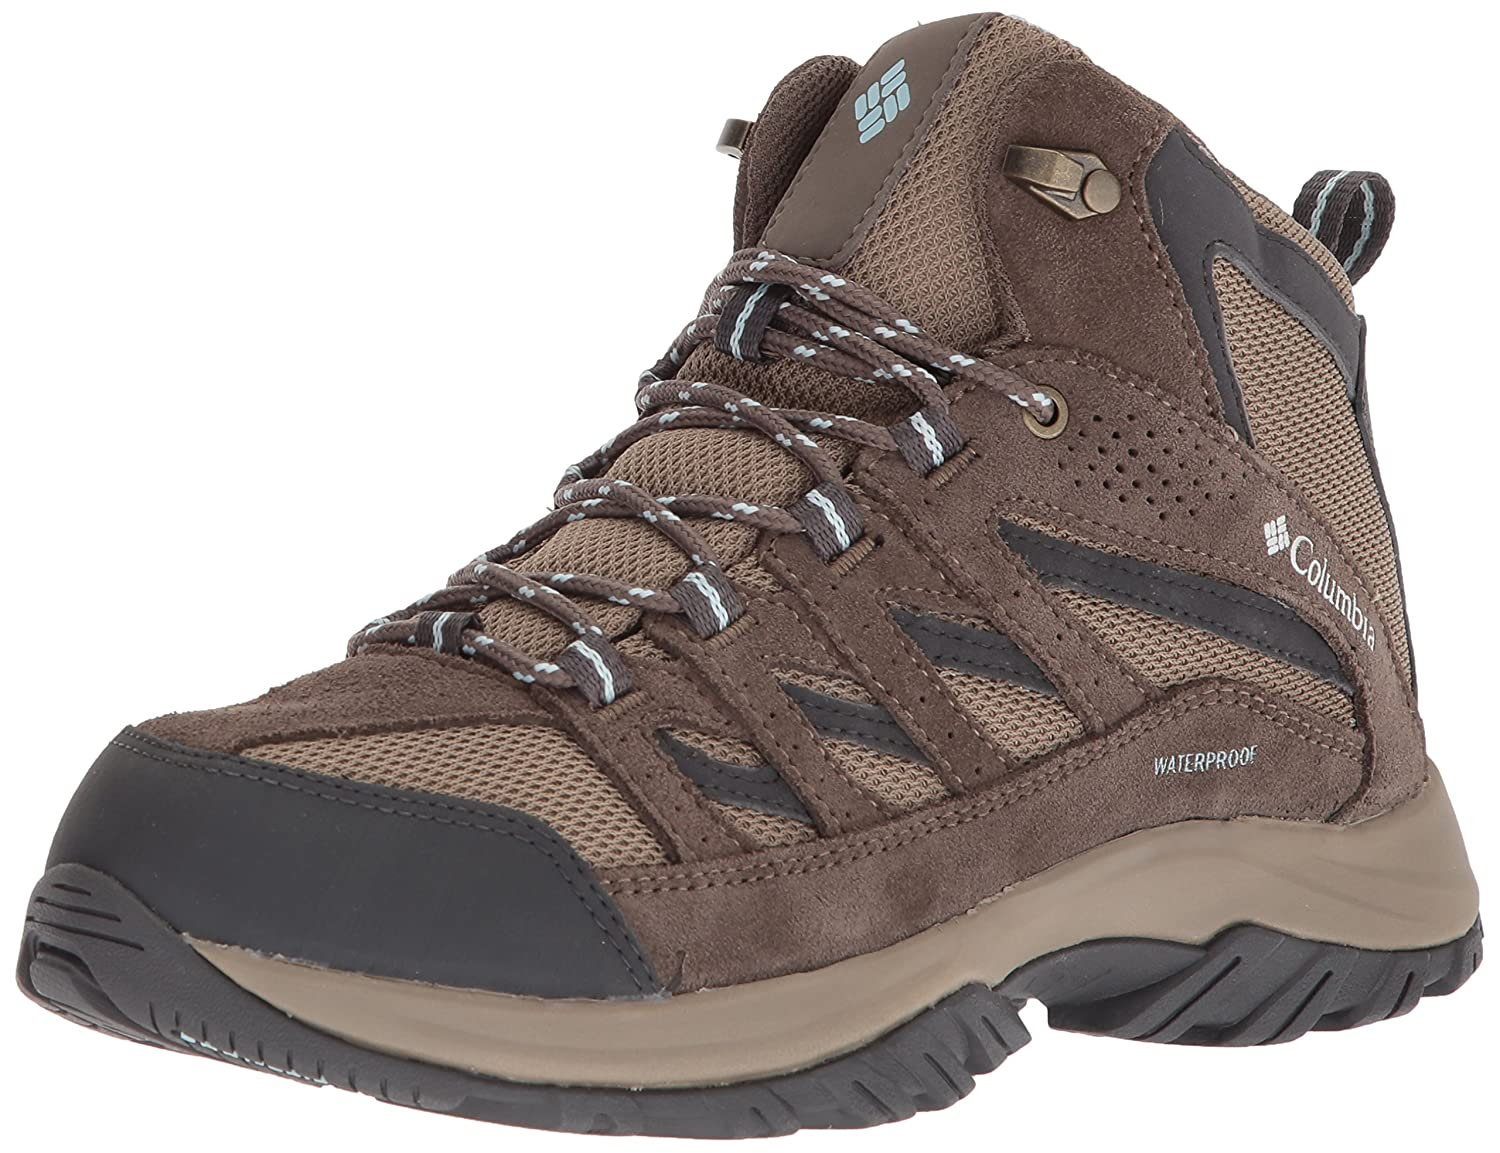 Columbia Women's Crestwood Mid Waterproof Hiking Boot B06X3SC8NN 6.5 B(M) US|Pebble, Oxygen